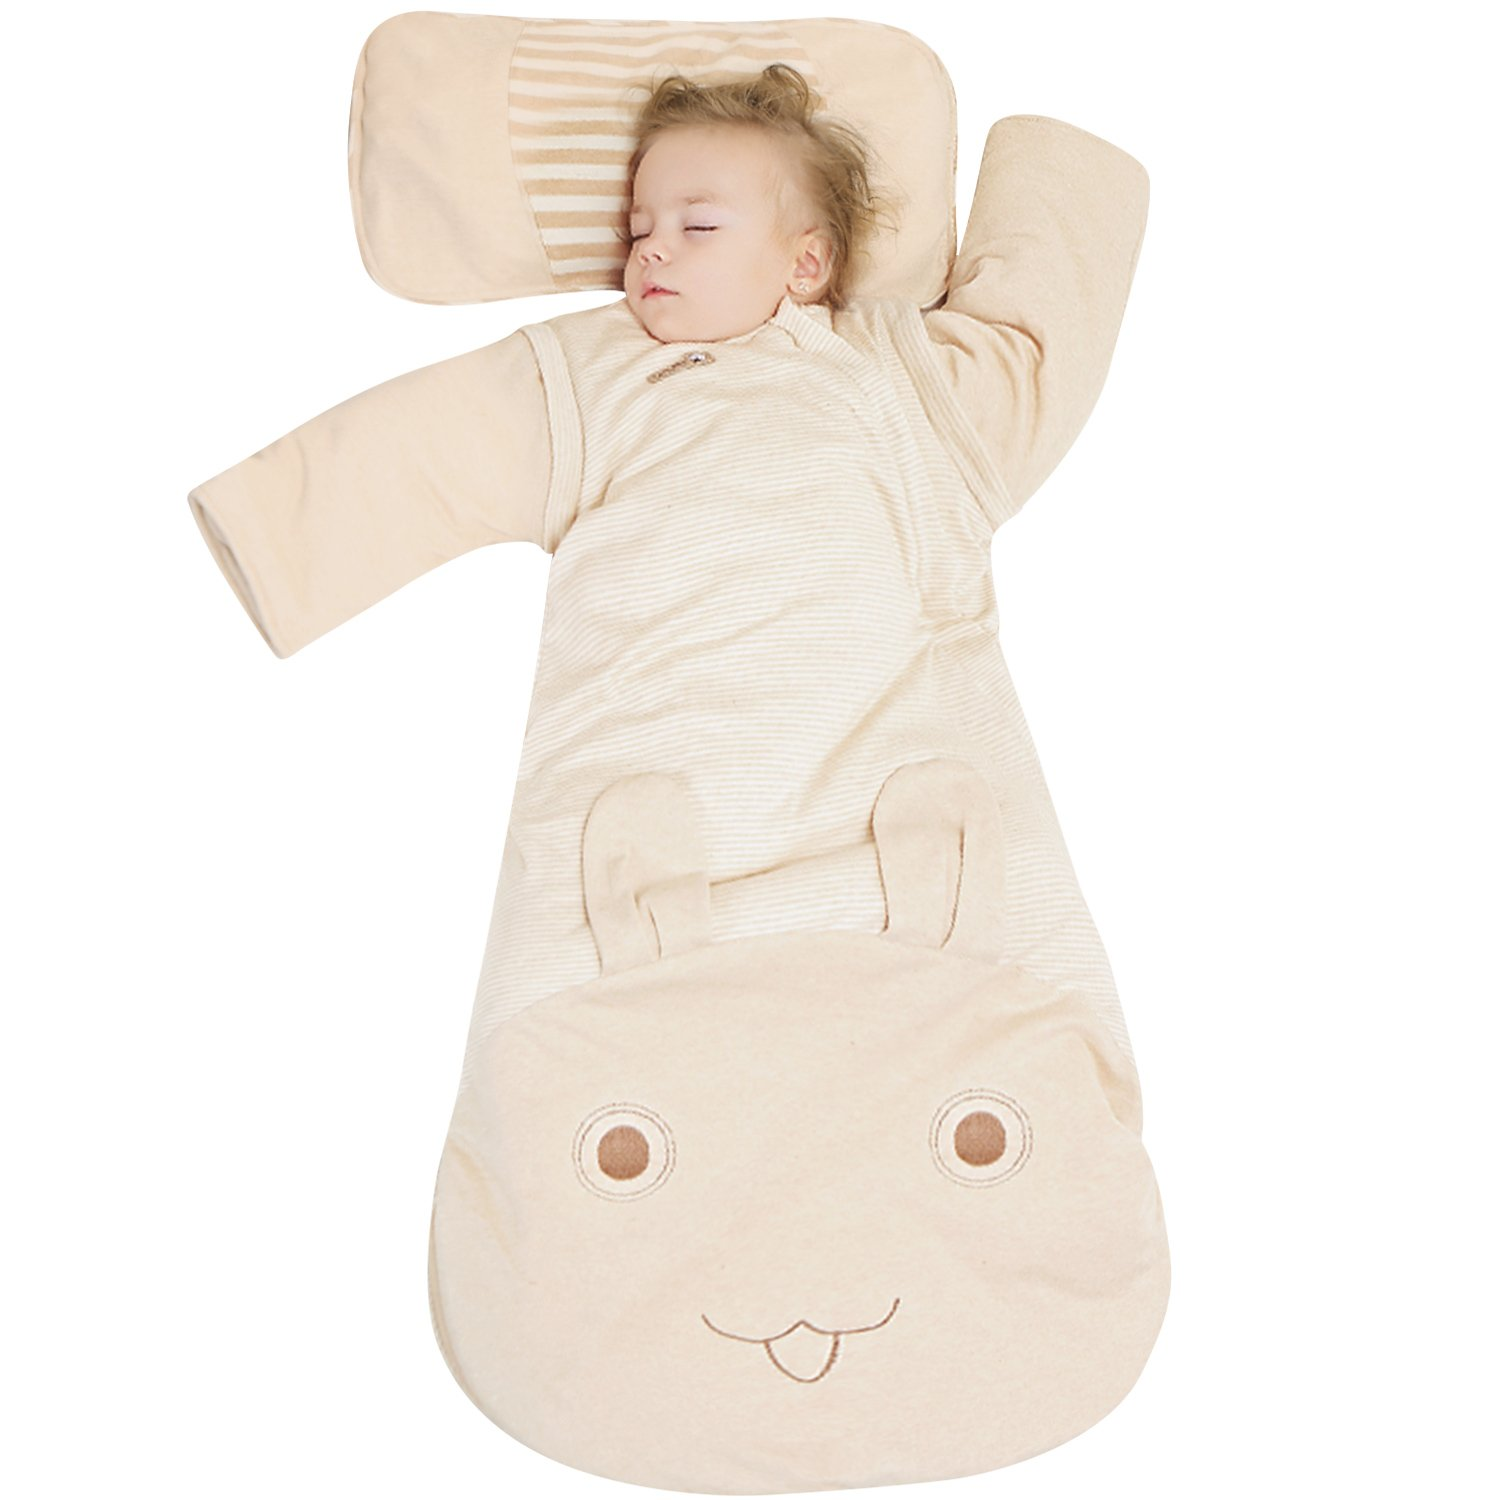 OuYun Baby Organic Sleeping Winter Detachable Sleeve Wearable Blanket, 150g Filling(50-68℉) by OuYun